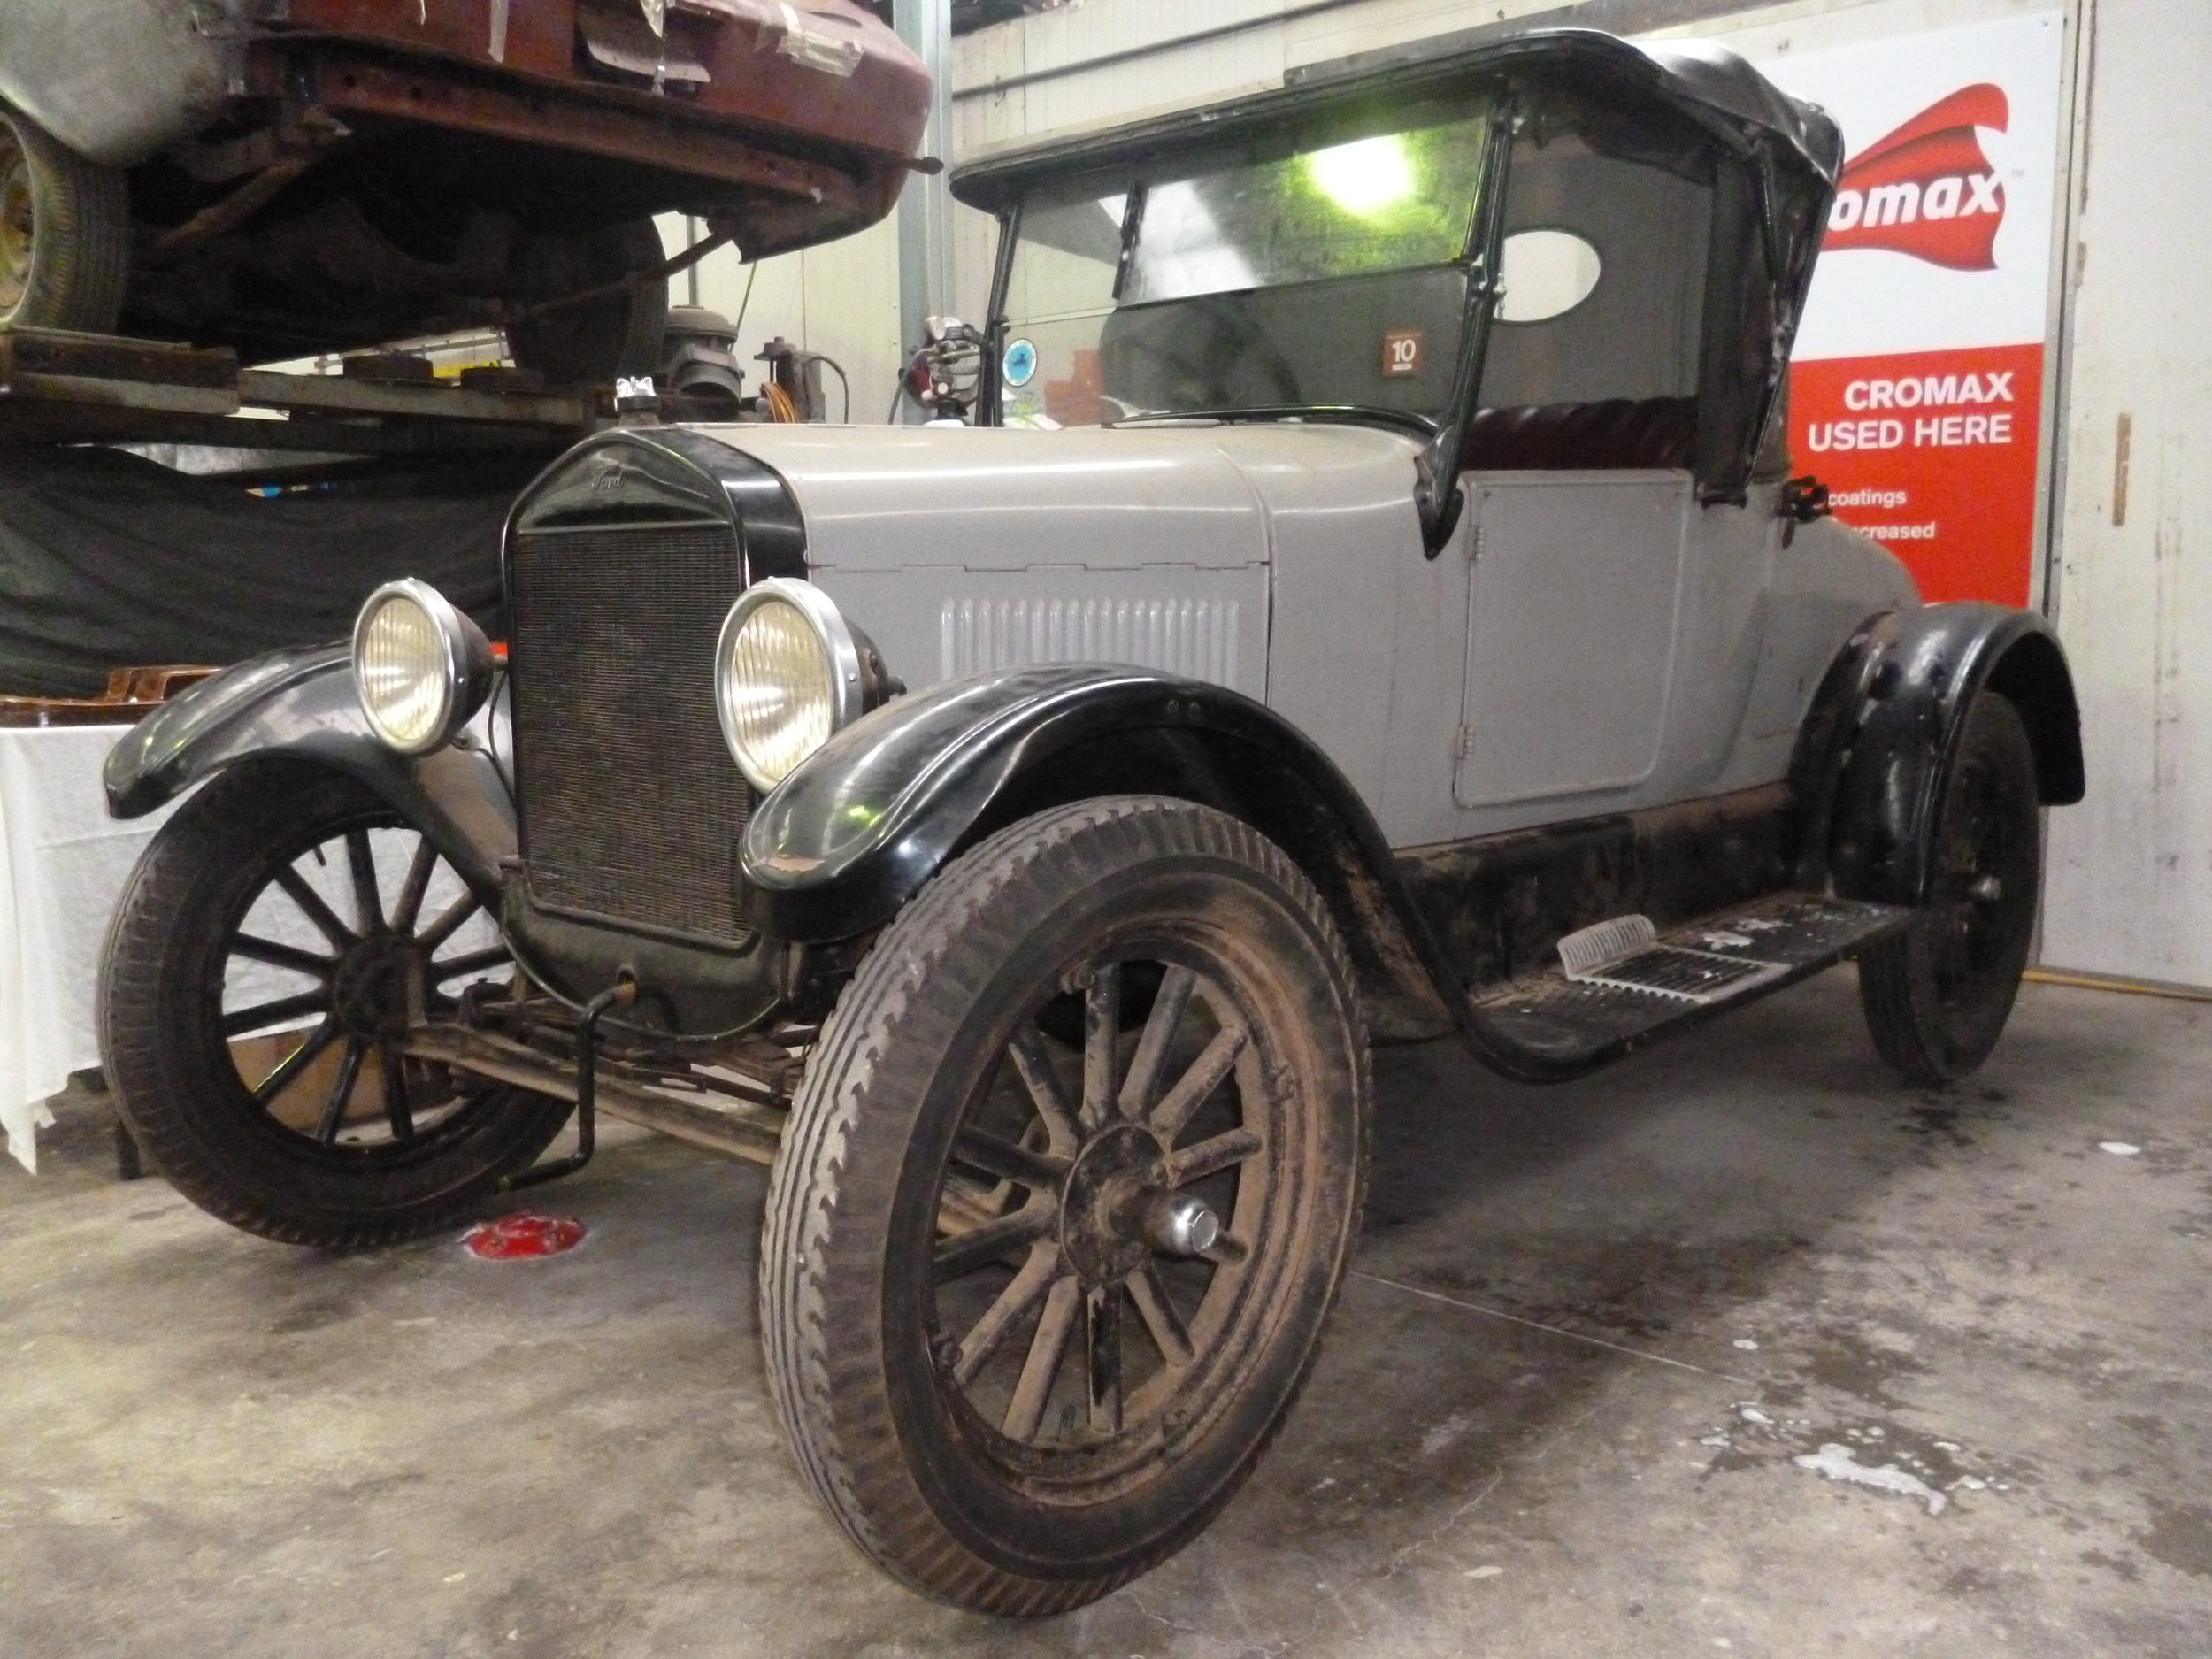 The 1927 Model T ford requires a full restoration. The body has been removed from its chassis. Once the body was removed from the chassis the steel body panels were removed from the timber frame. The body panels have been sandblasted inside and out. The chassis has been sandblasted and prepared for rebuild.